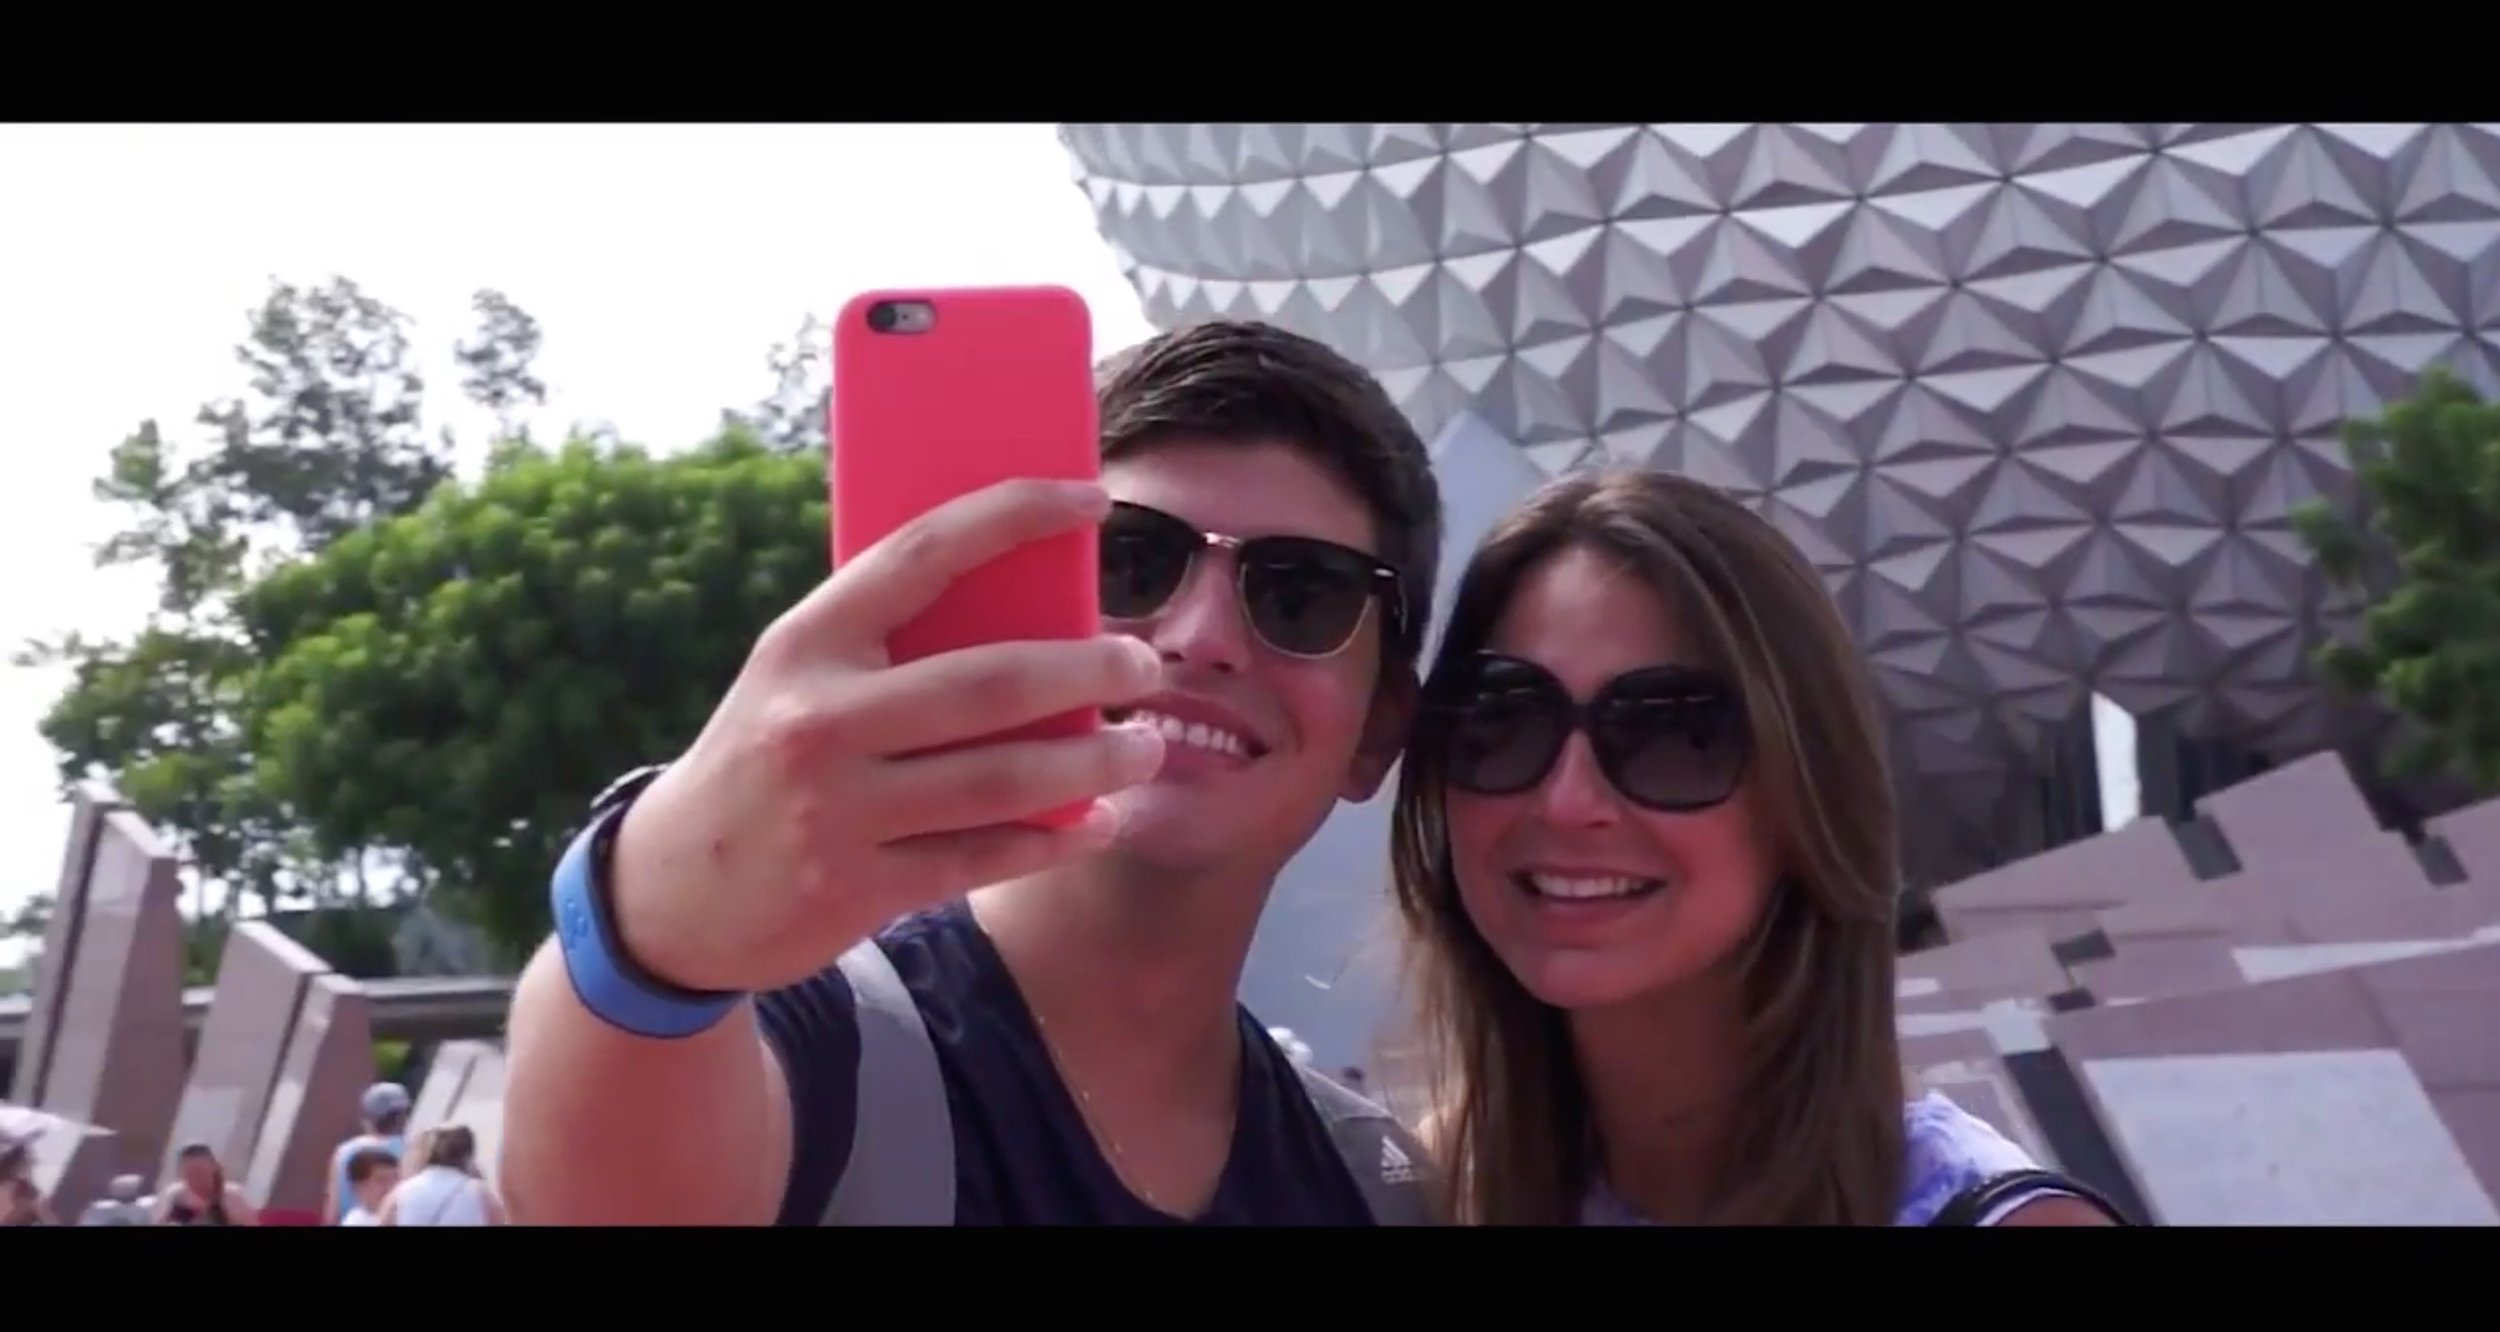 The Perfect Selfie - Happy couple taking a fun selfie at Epcot.